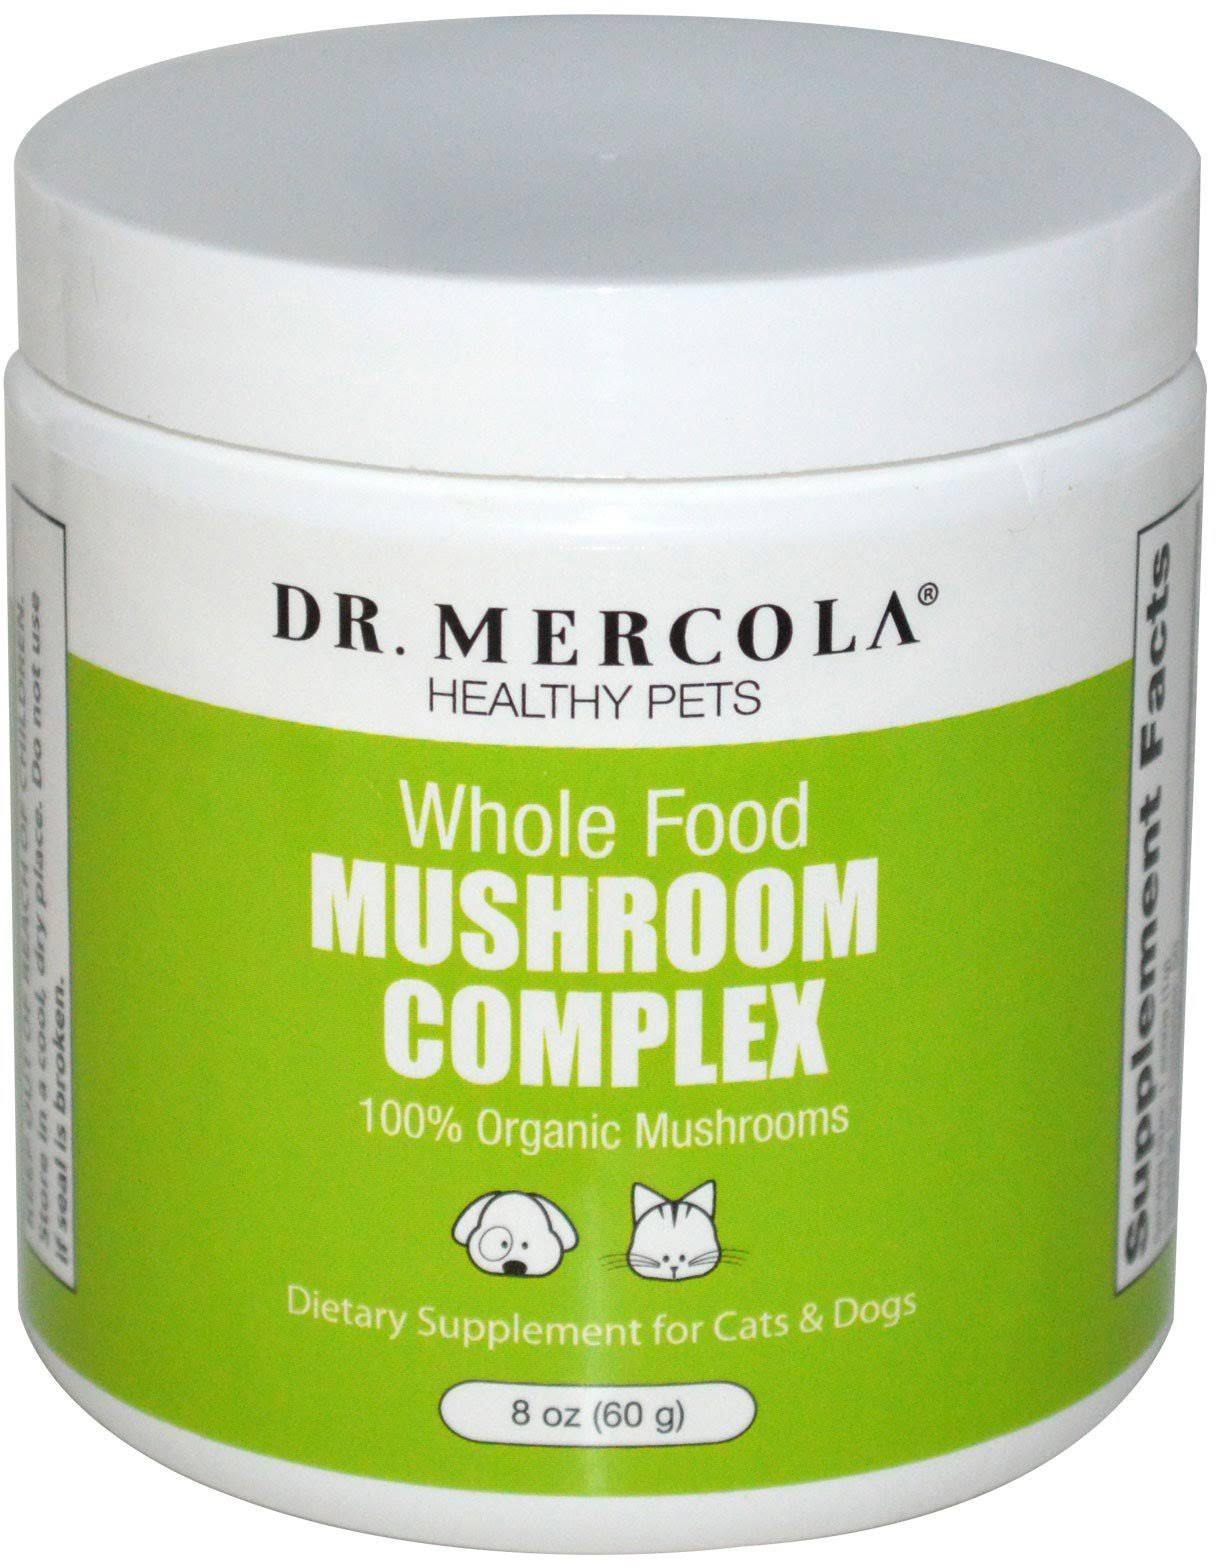 Dr Mercola Whole Food Mushroom Complex Pet Supplement - 8oz